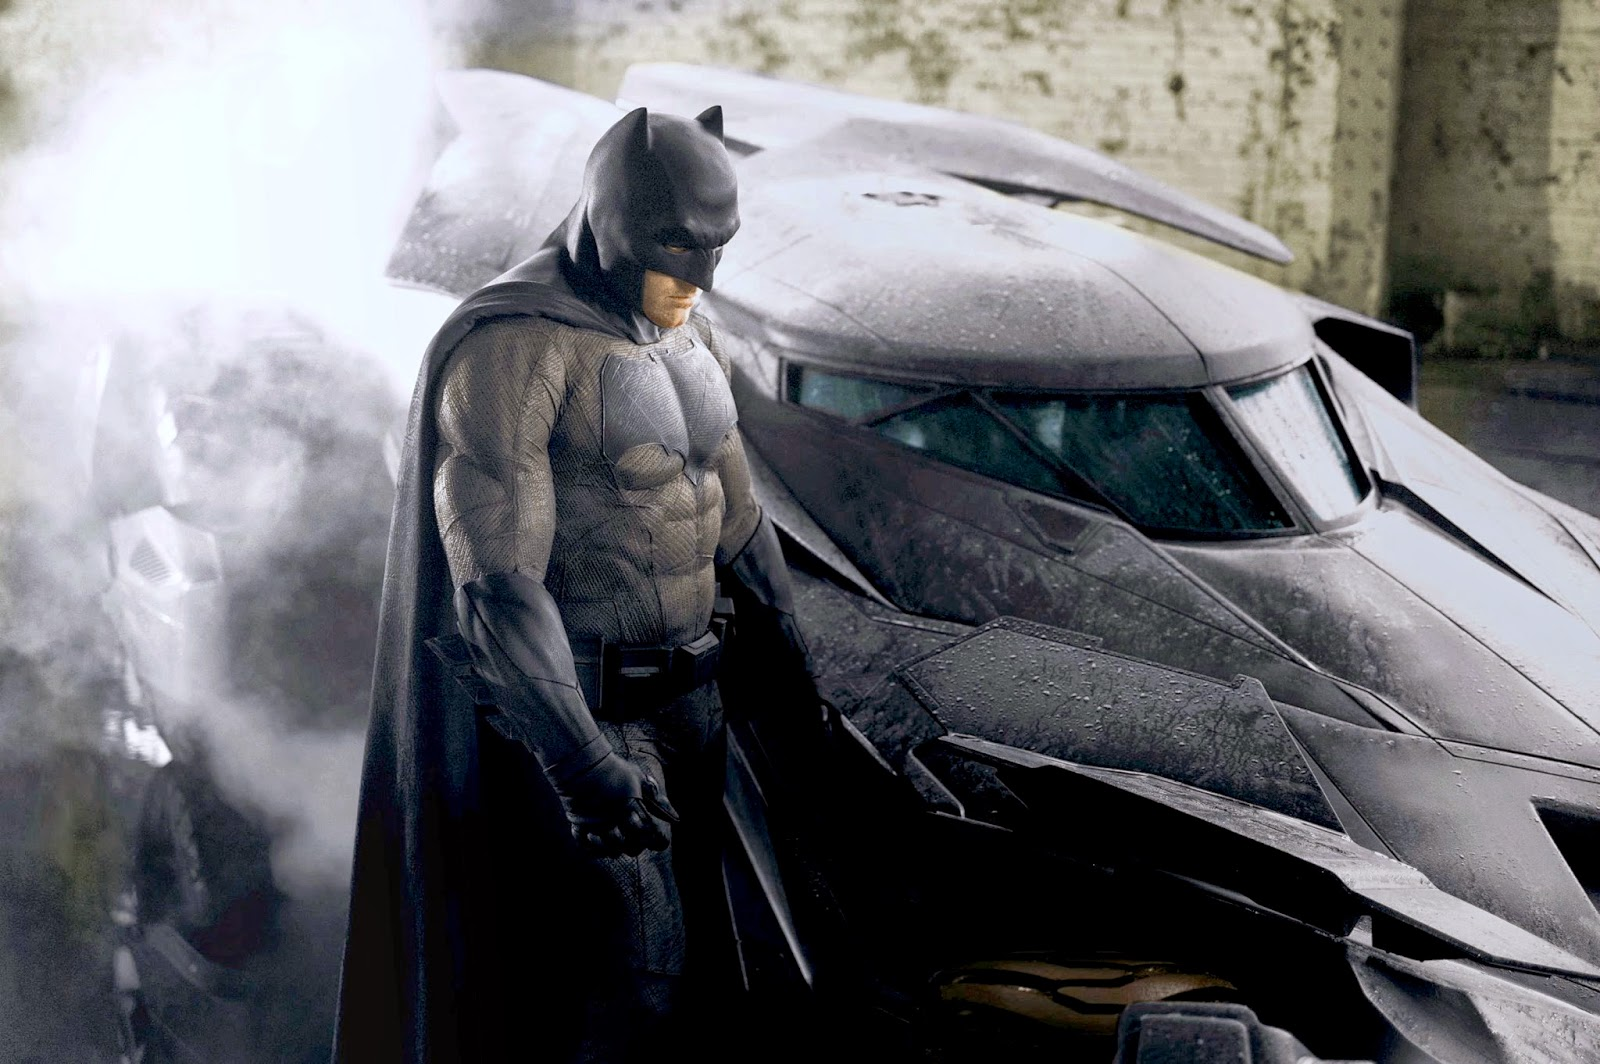 Ben Affleck as Batman in a photo tweeted by director Zack Snyder on the Detroit set of 'Batman v Superman'